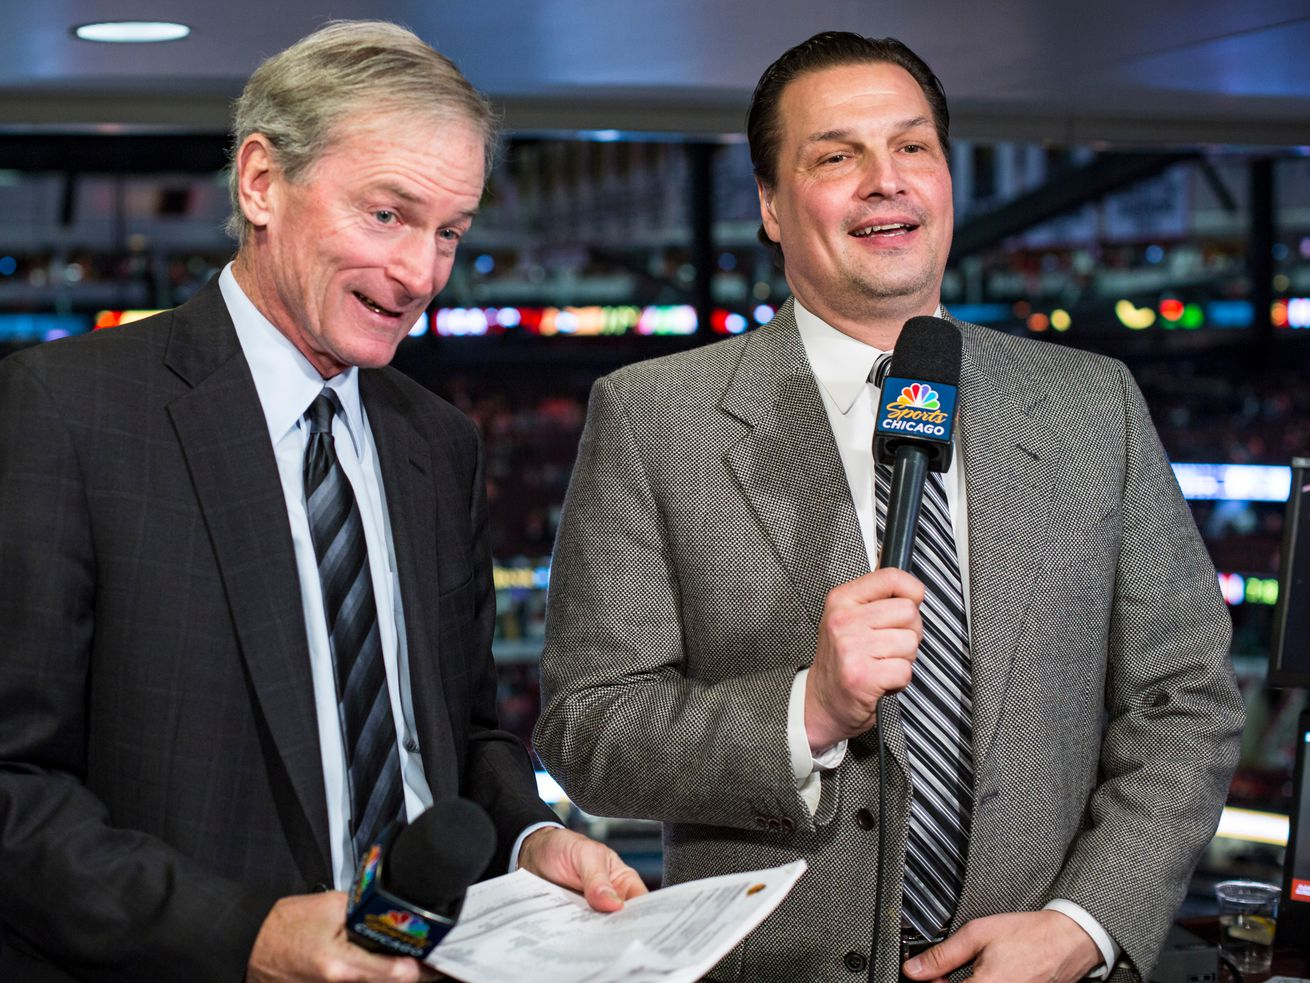 Eddie Olczyk (right) and Pat Foley are calling Blackhawks playoff games together but apart. Foley is in a production truck outside the United Center, and Olczyk is at NBC Sports Network's studios in Stamford, Conn.